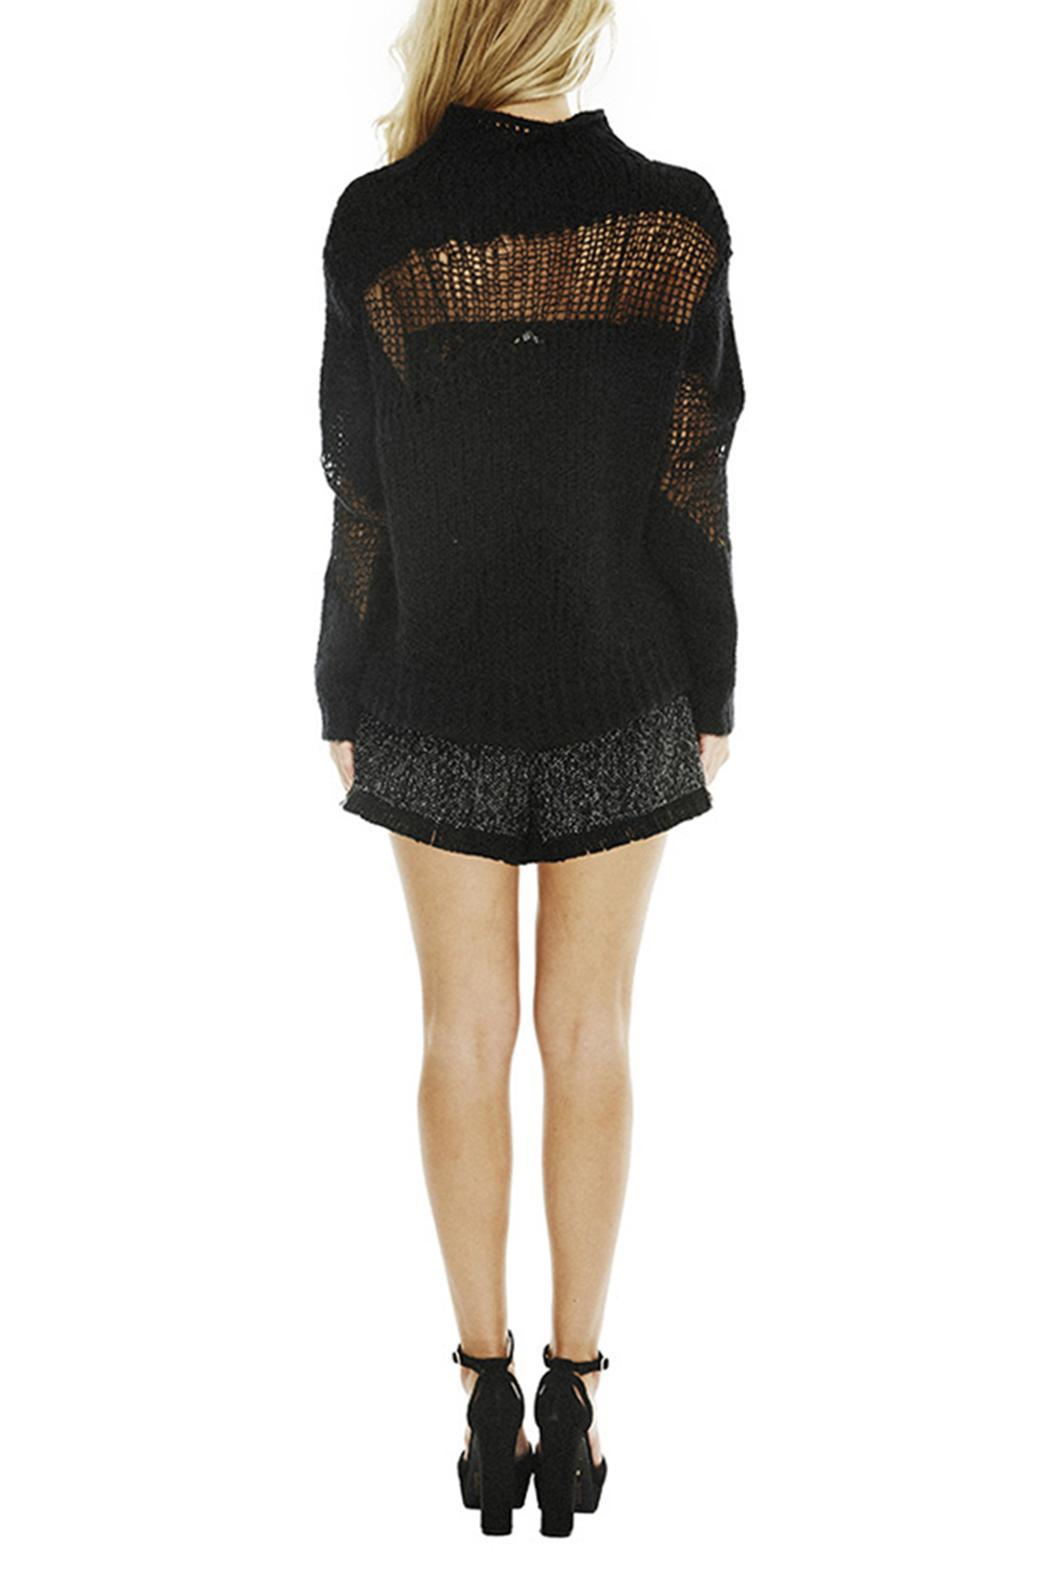 ASTR Louise Knit Sweater - Side Cropped Image